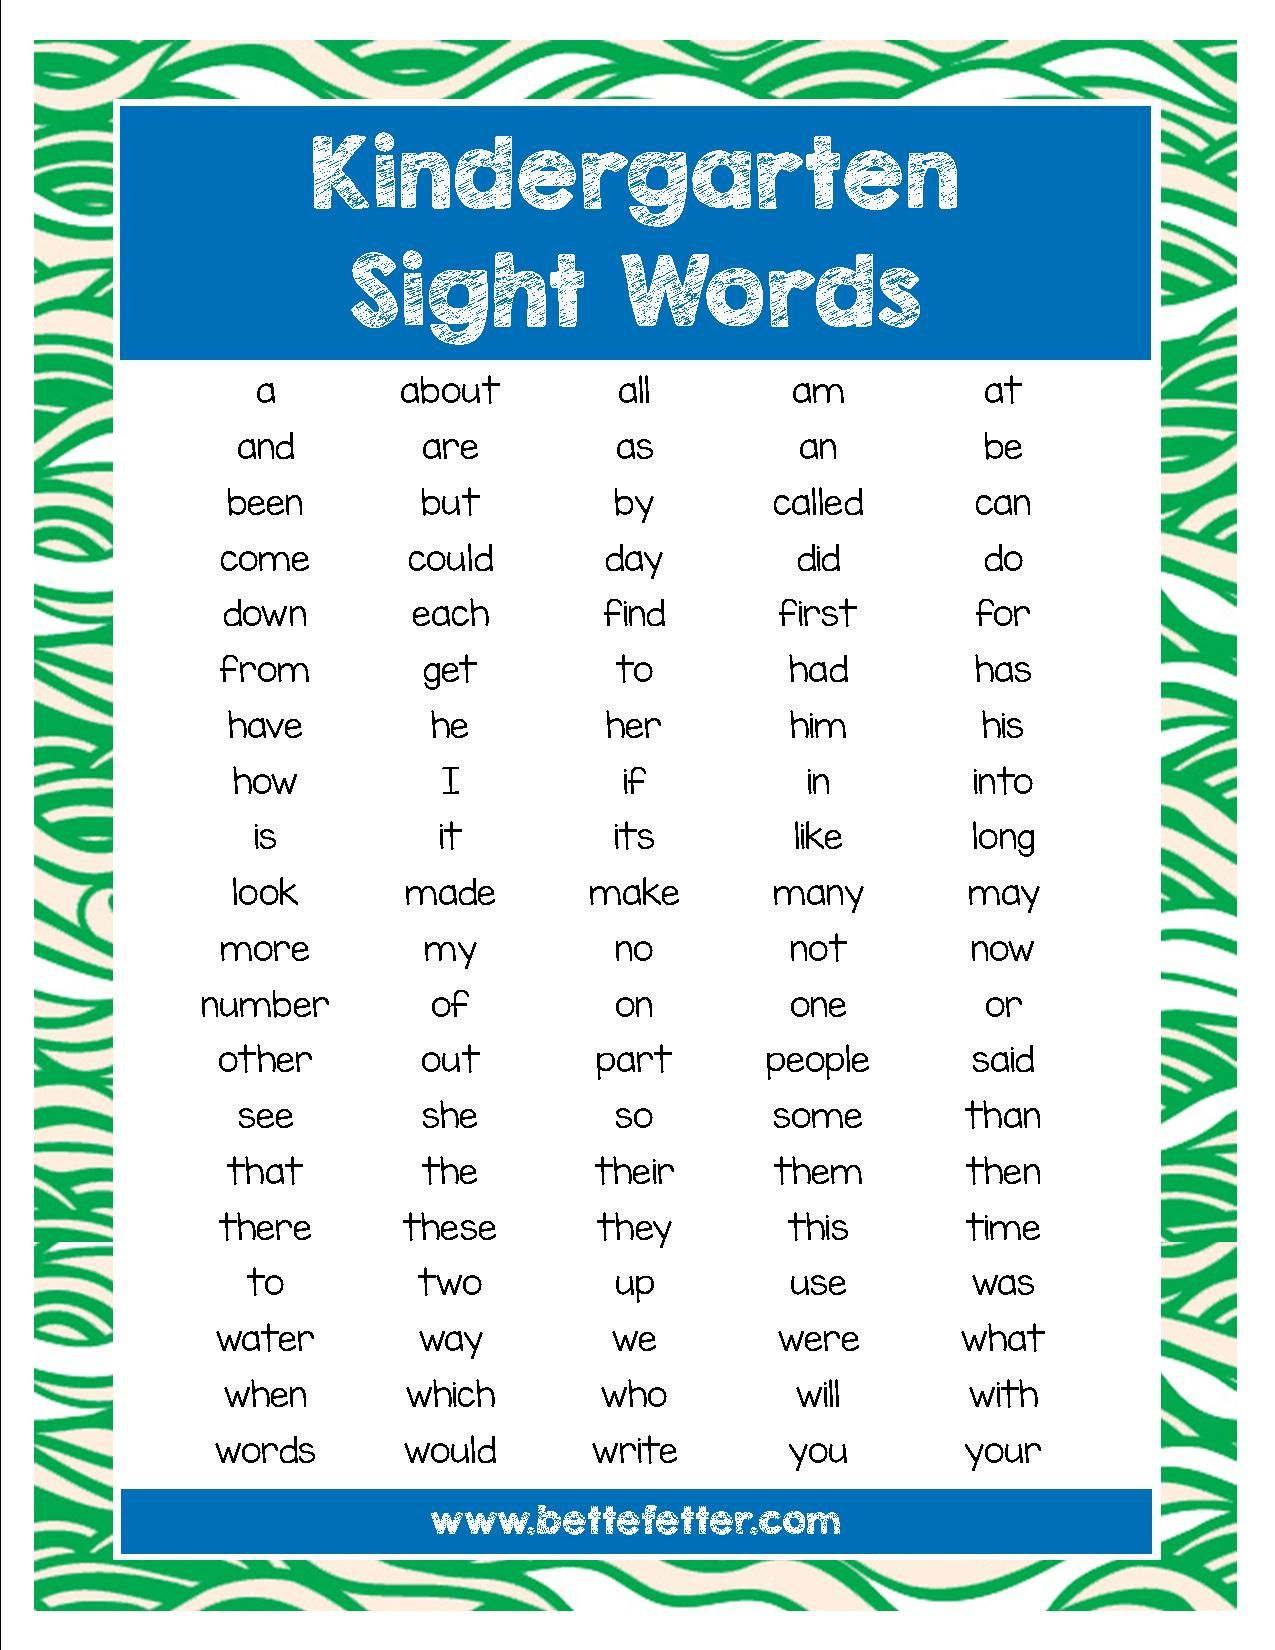 100 sight words your kindergartner or first grader should know.